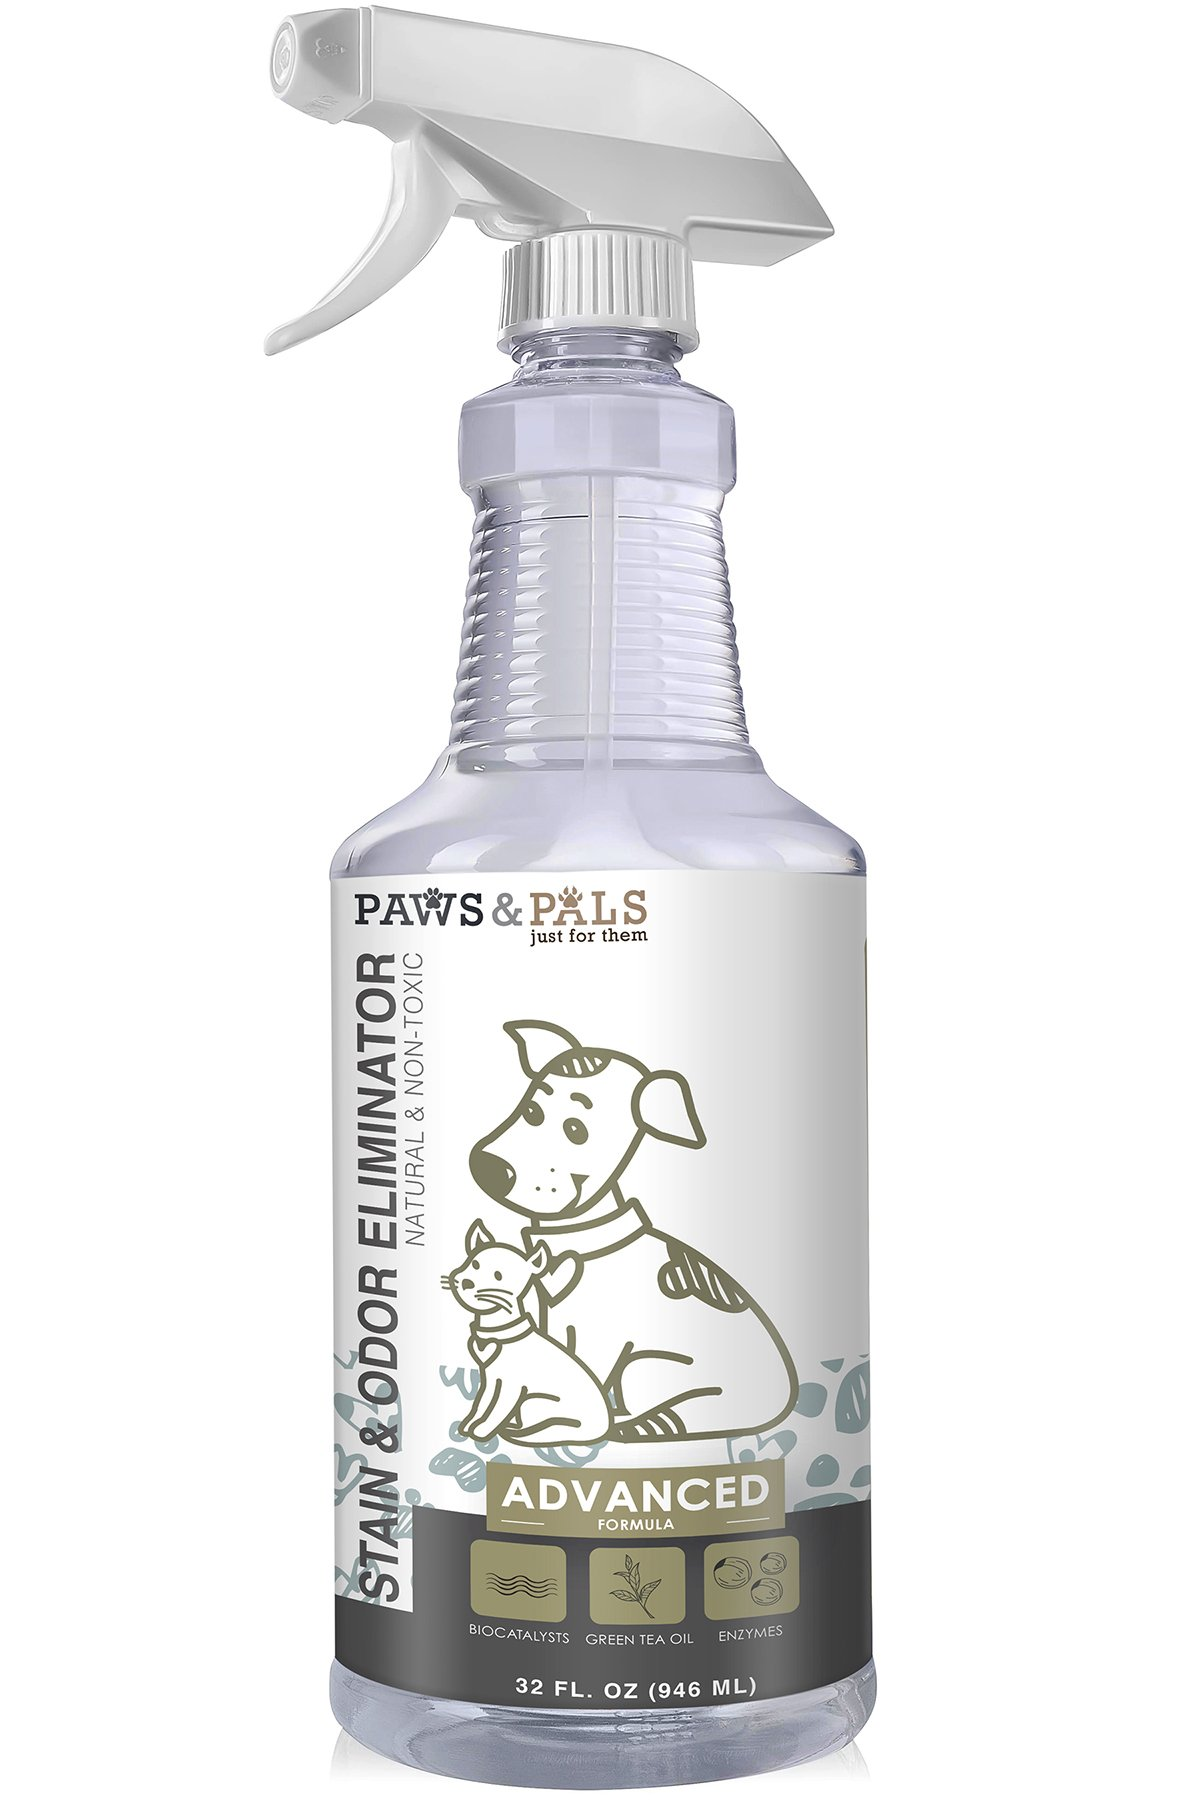 Organic Pet Stain Odor & Remover - Professional Strength Eliminator 32 oz Spray - Enzyme Eliminates Cat and Dog Urine Pee Stains Deodorizer Cleaner